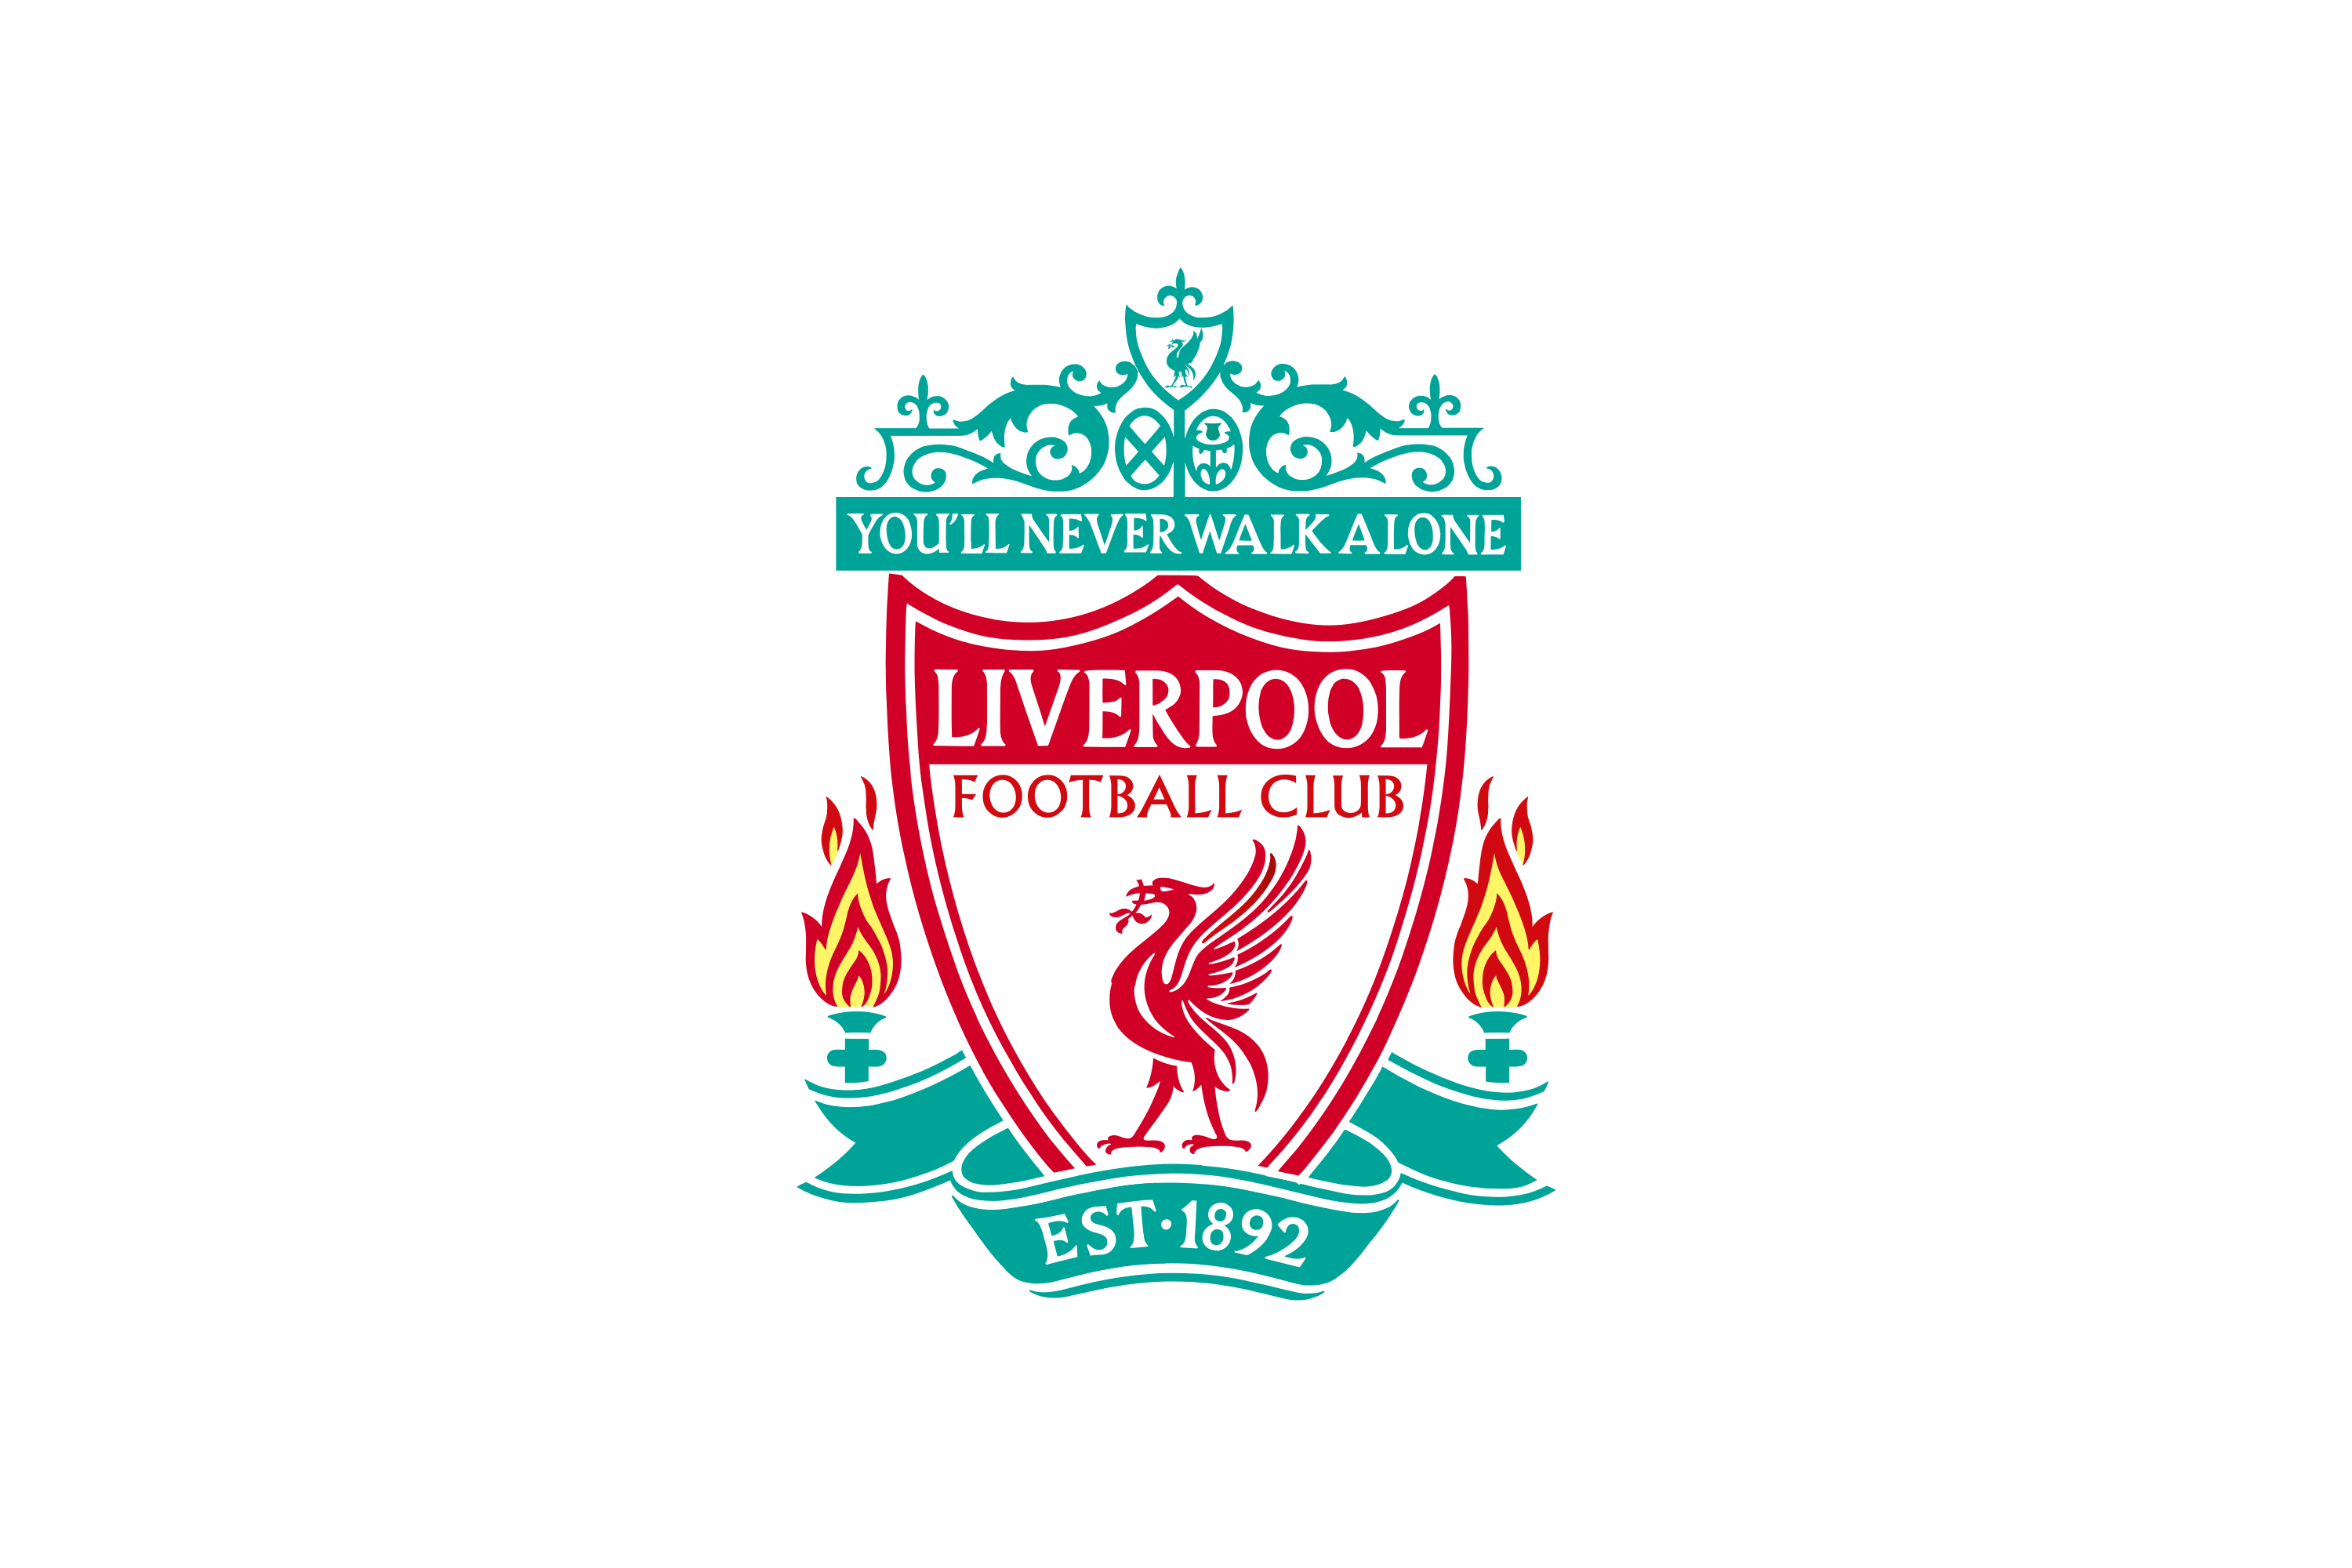 Download Liverpool F C Liverpool Football Club Logo In Svg Vector Or Png File Format Logo Wine